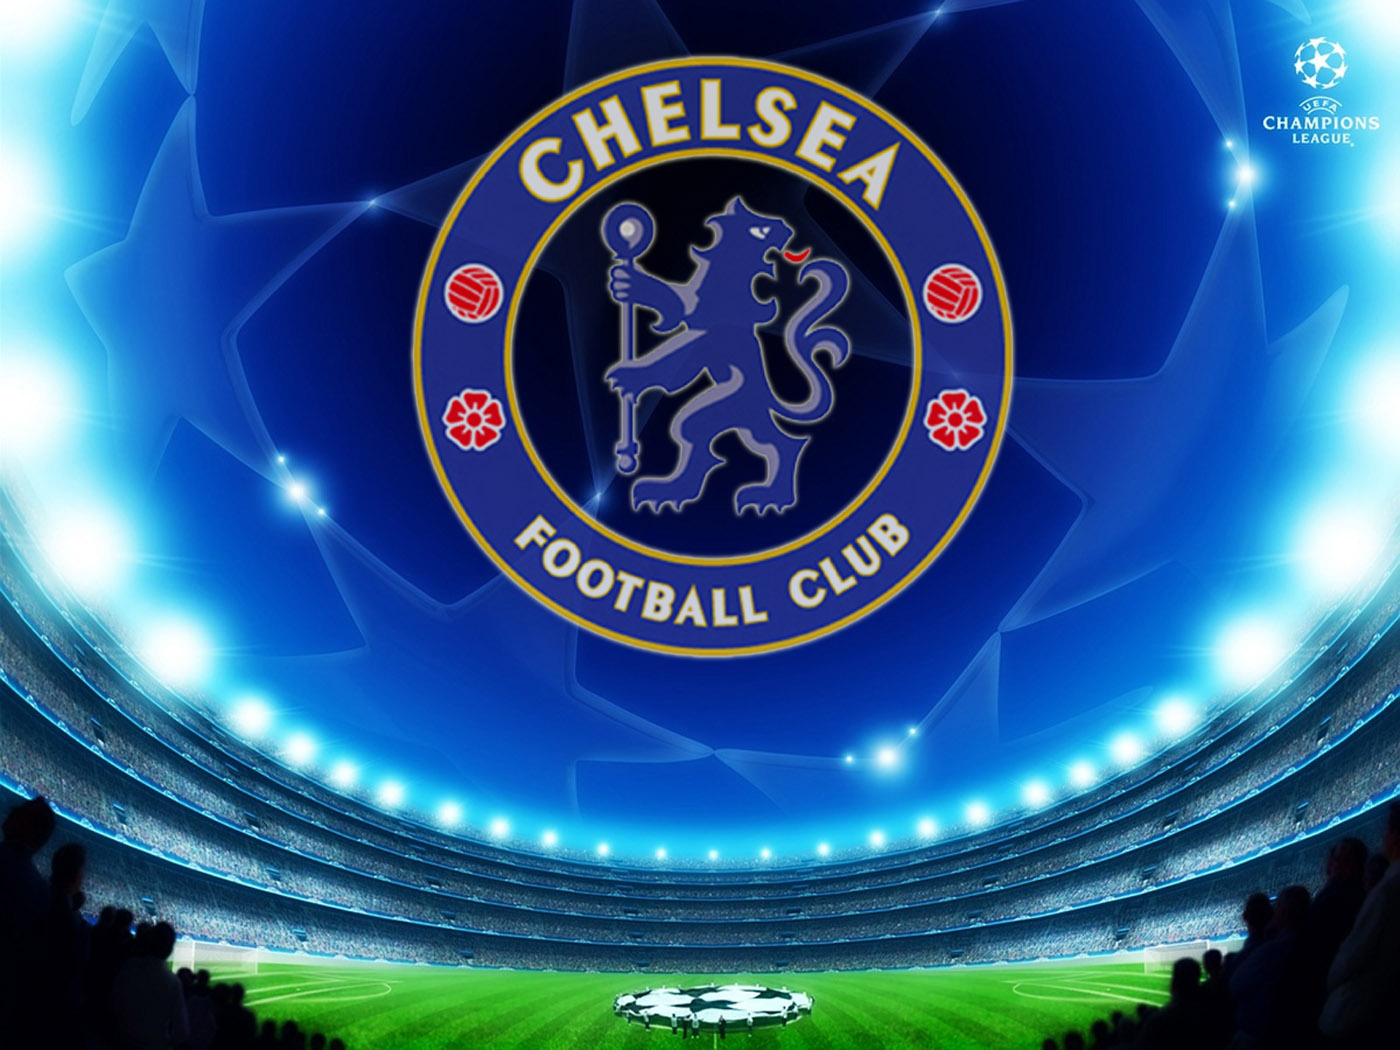 Chelsea Logo wallpaper – Chelsea FC Wallpapers